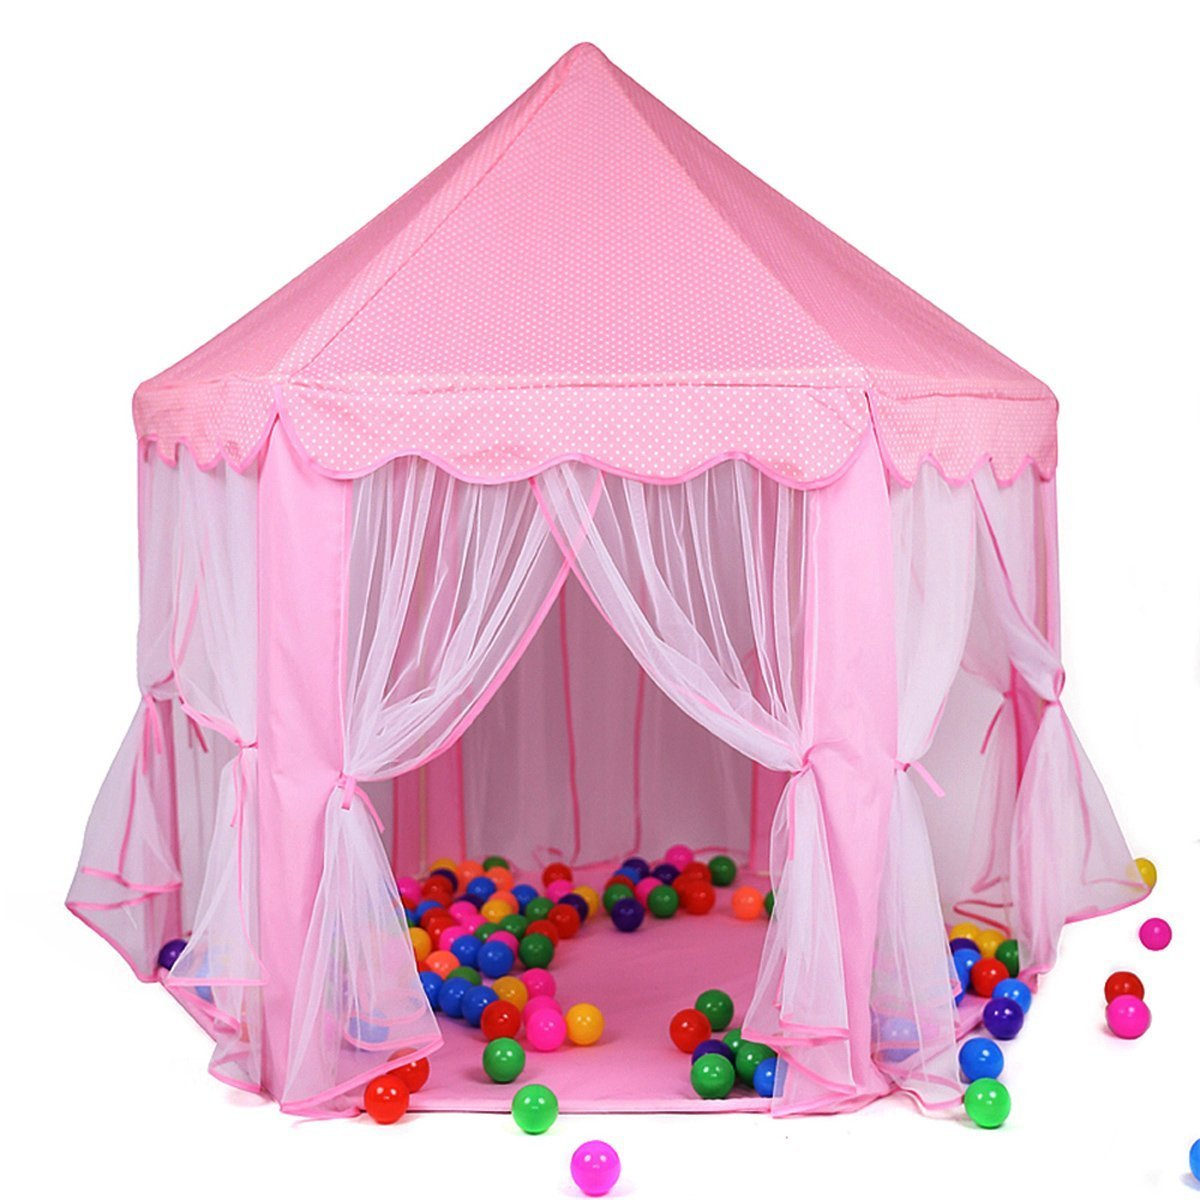 Newest Design Extra Large Room Garden Outdoor Indoor Playhouse,Large Playhouse For Kids Festival Fairy Princess Castle Tent for Girls Deluxe Kids Princess Children Play Castle Tent